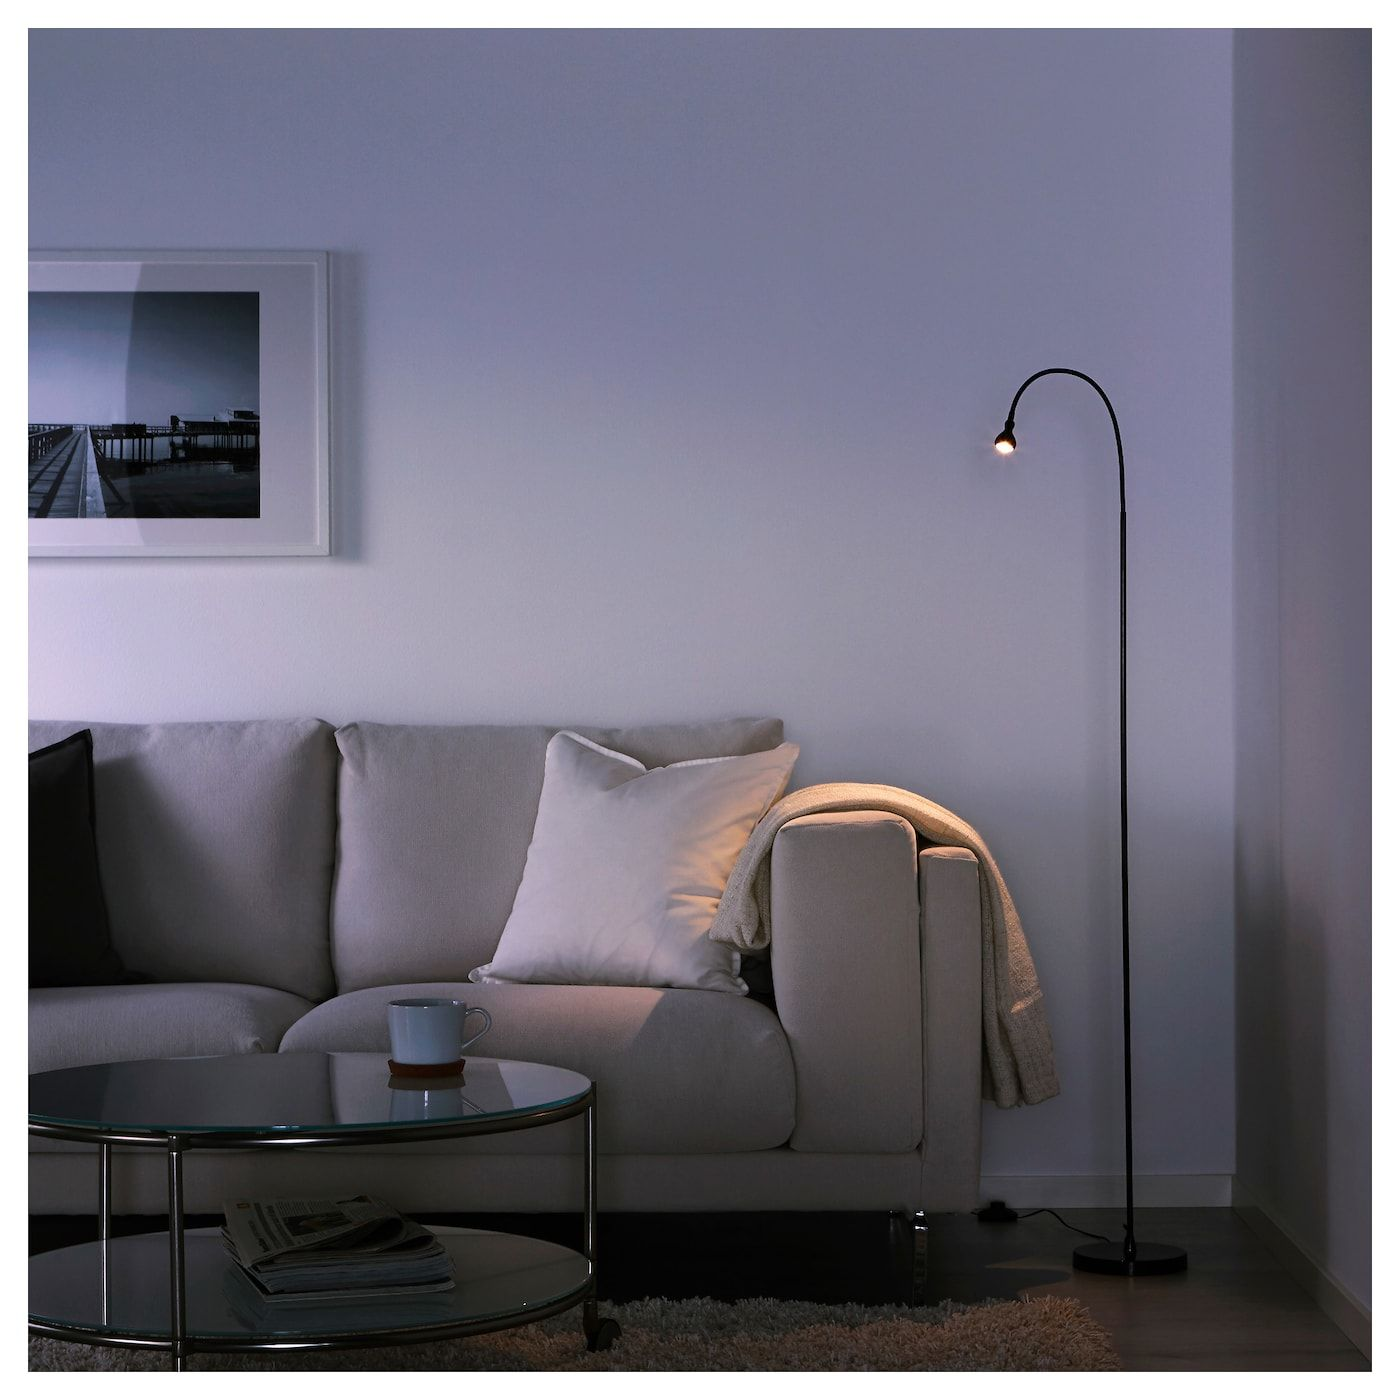 Home Outdoor Furniture Affordable Well Designed Ikea Candles Buy Candles Candle Accessories